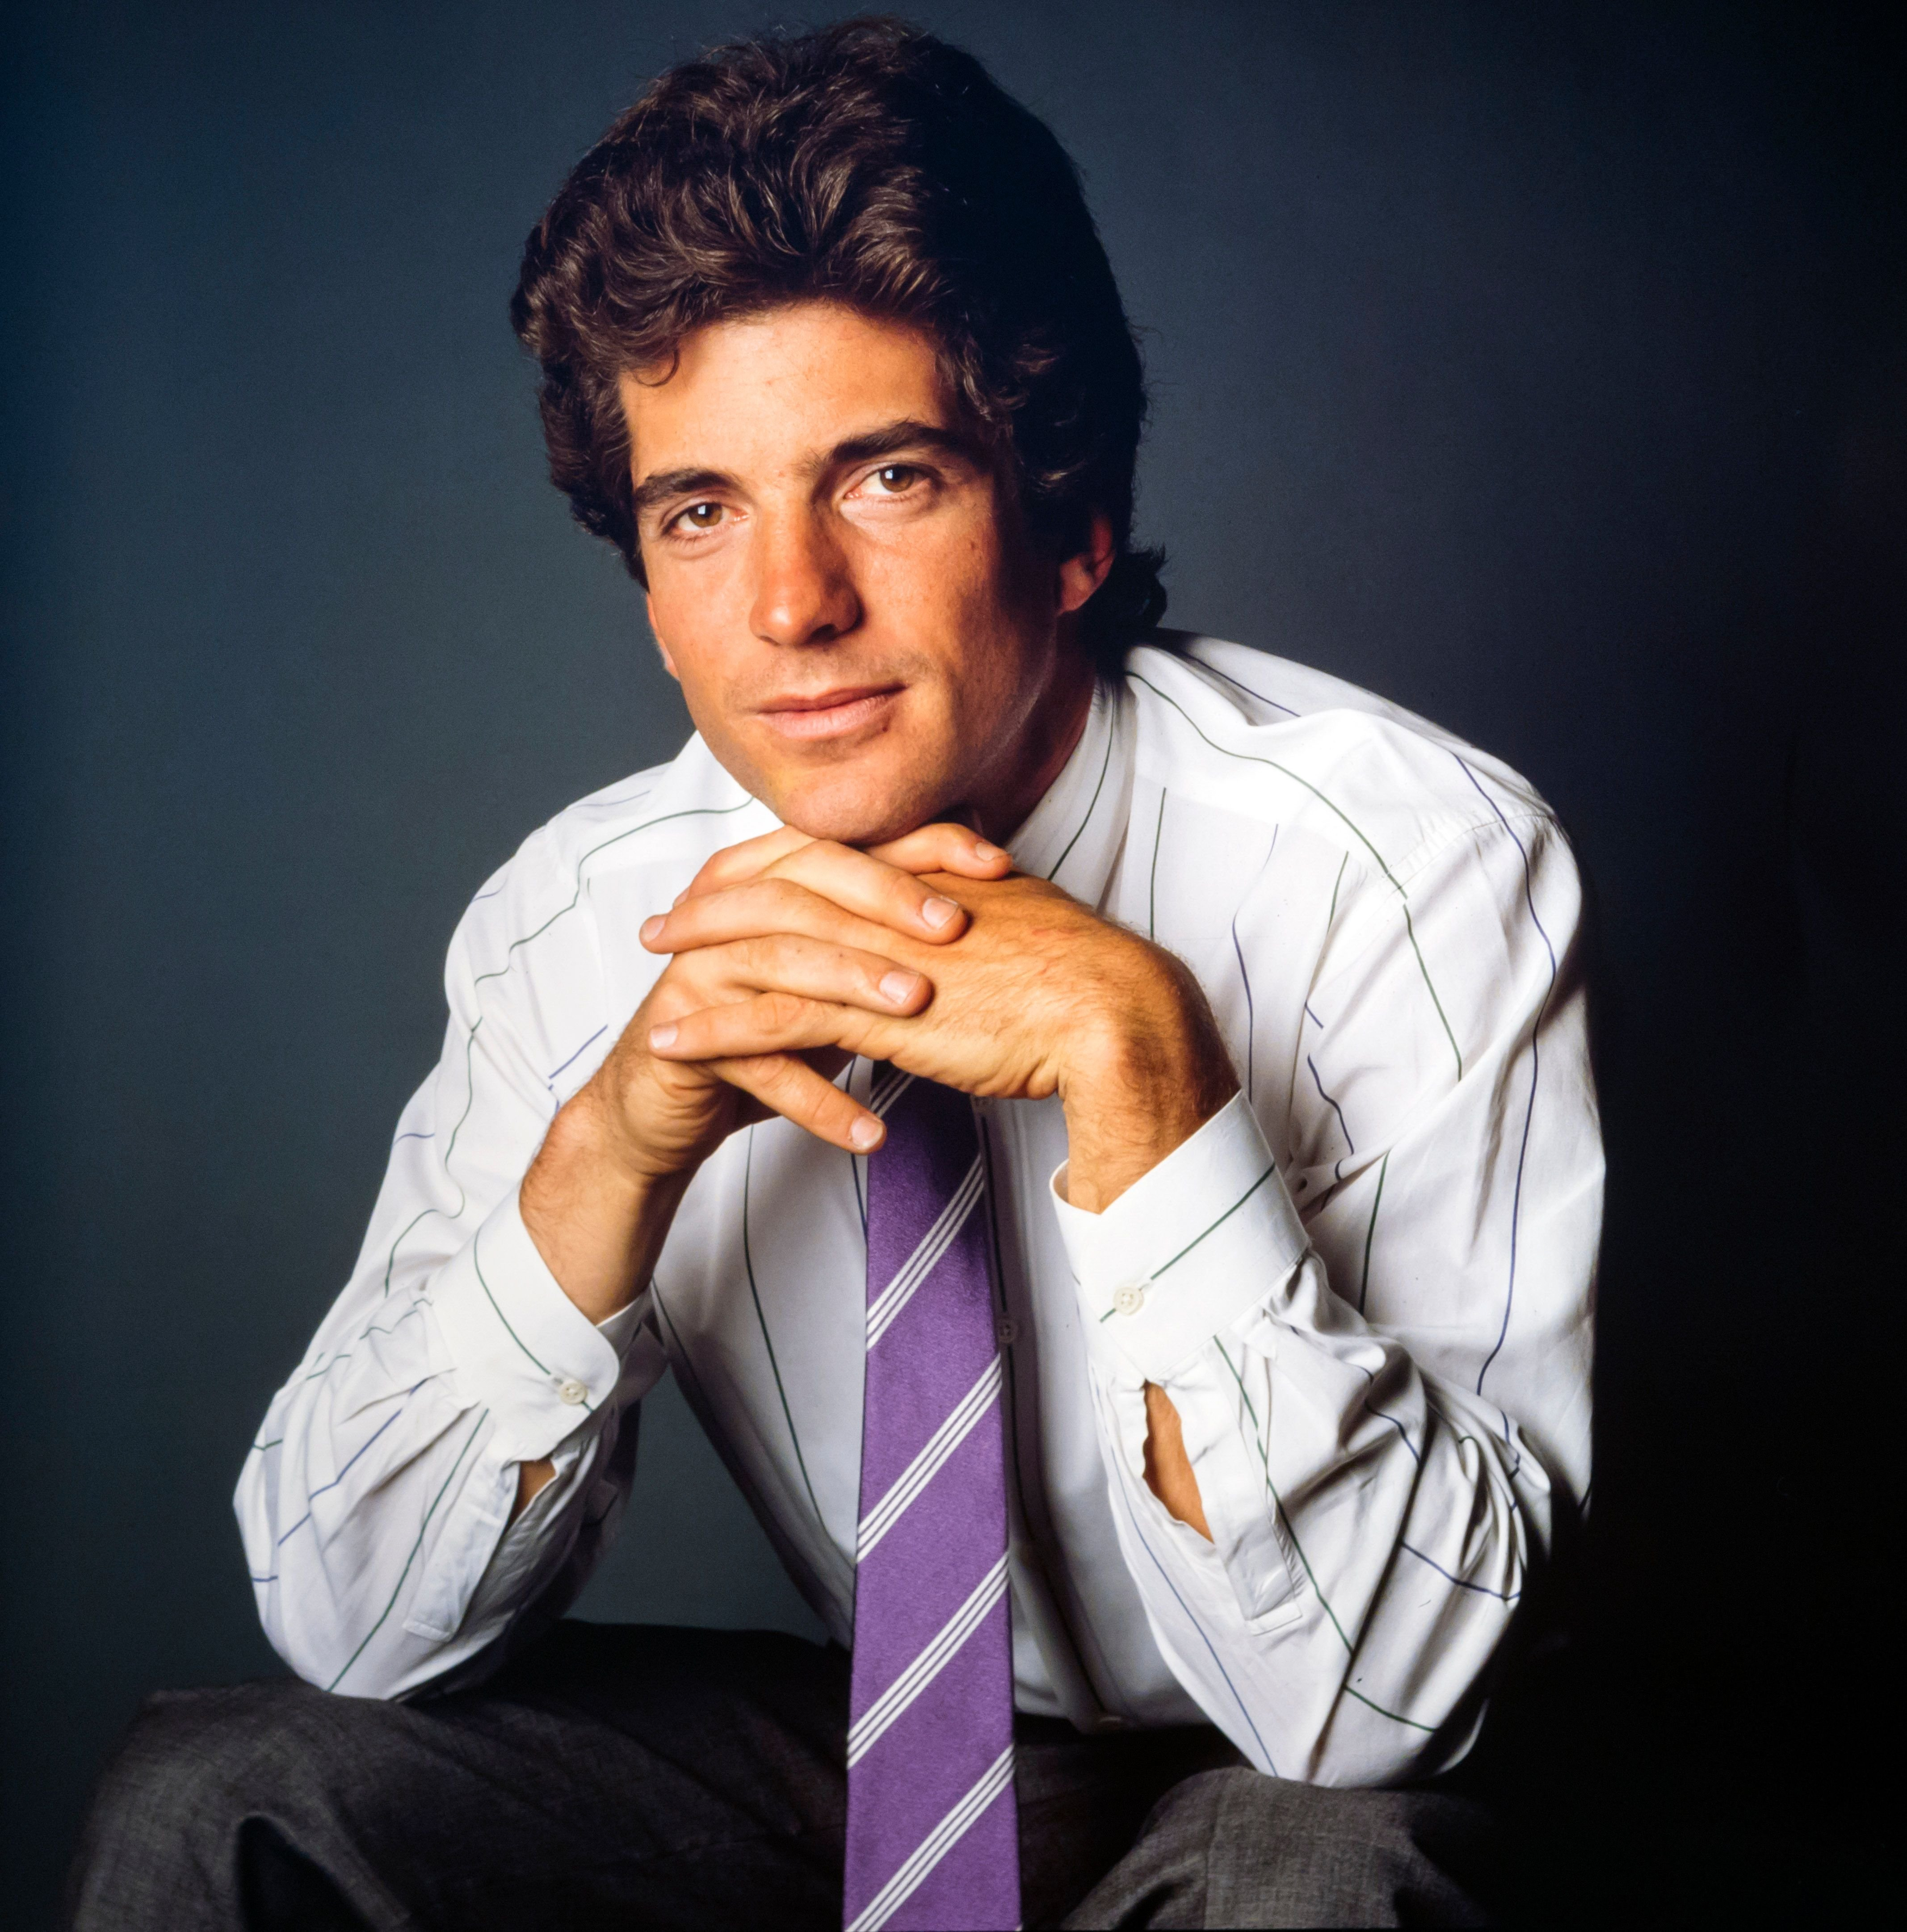 Studio portrait of American lawyer and magazine publisher John F Kennedy Jr. on June 09, 1988 | Photo: Getty Images